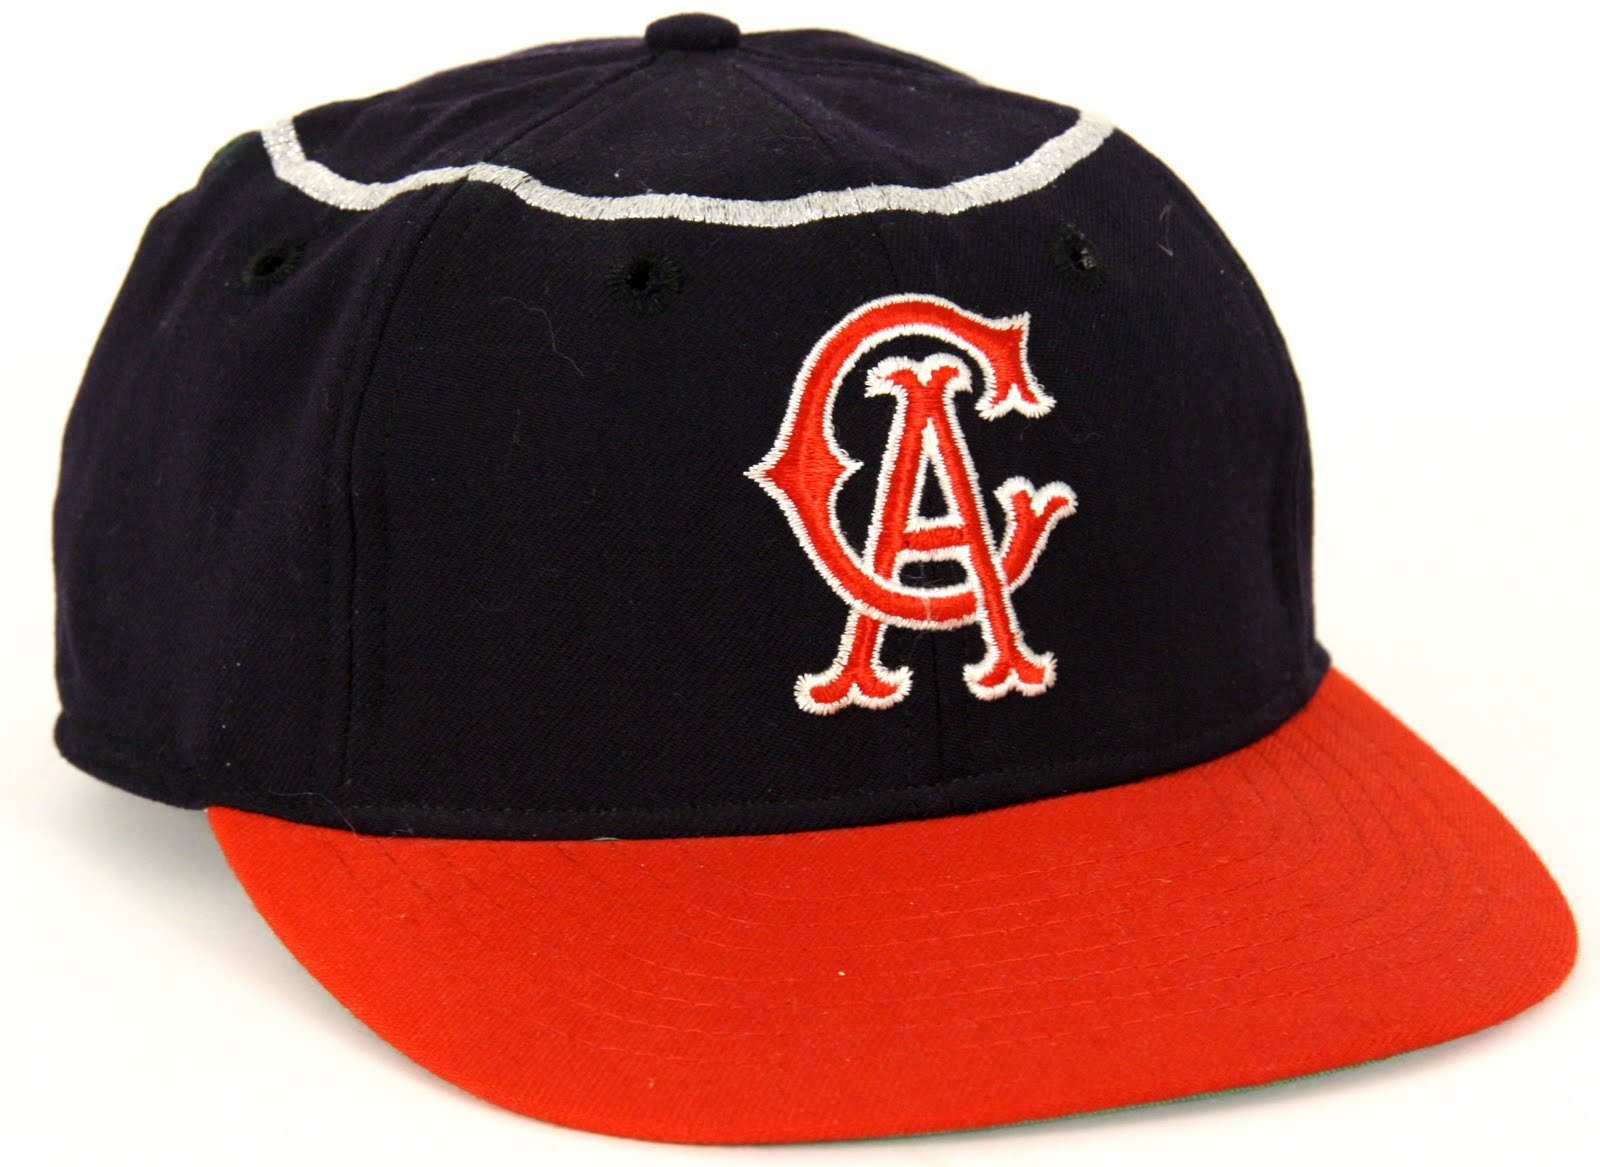 medium resolution of classic threads los angeles angels of anaheim baseball essential old school angels hat halo stayed